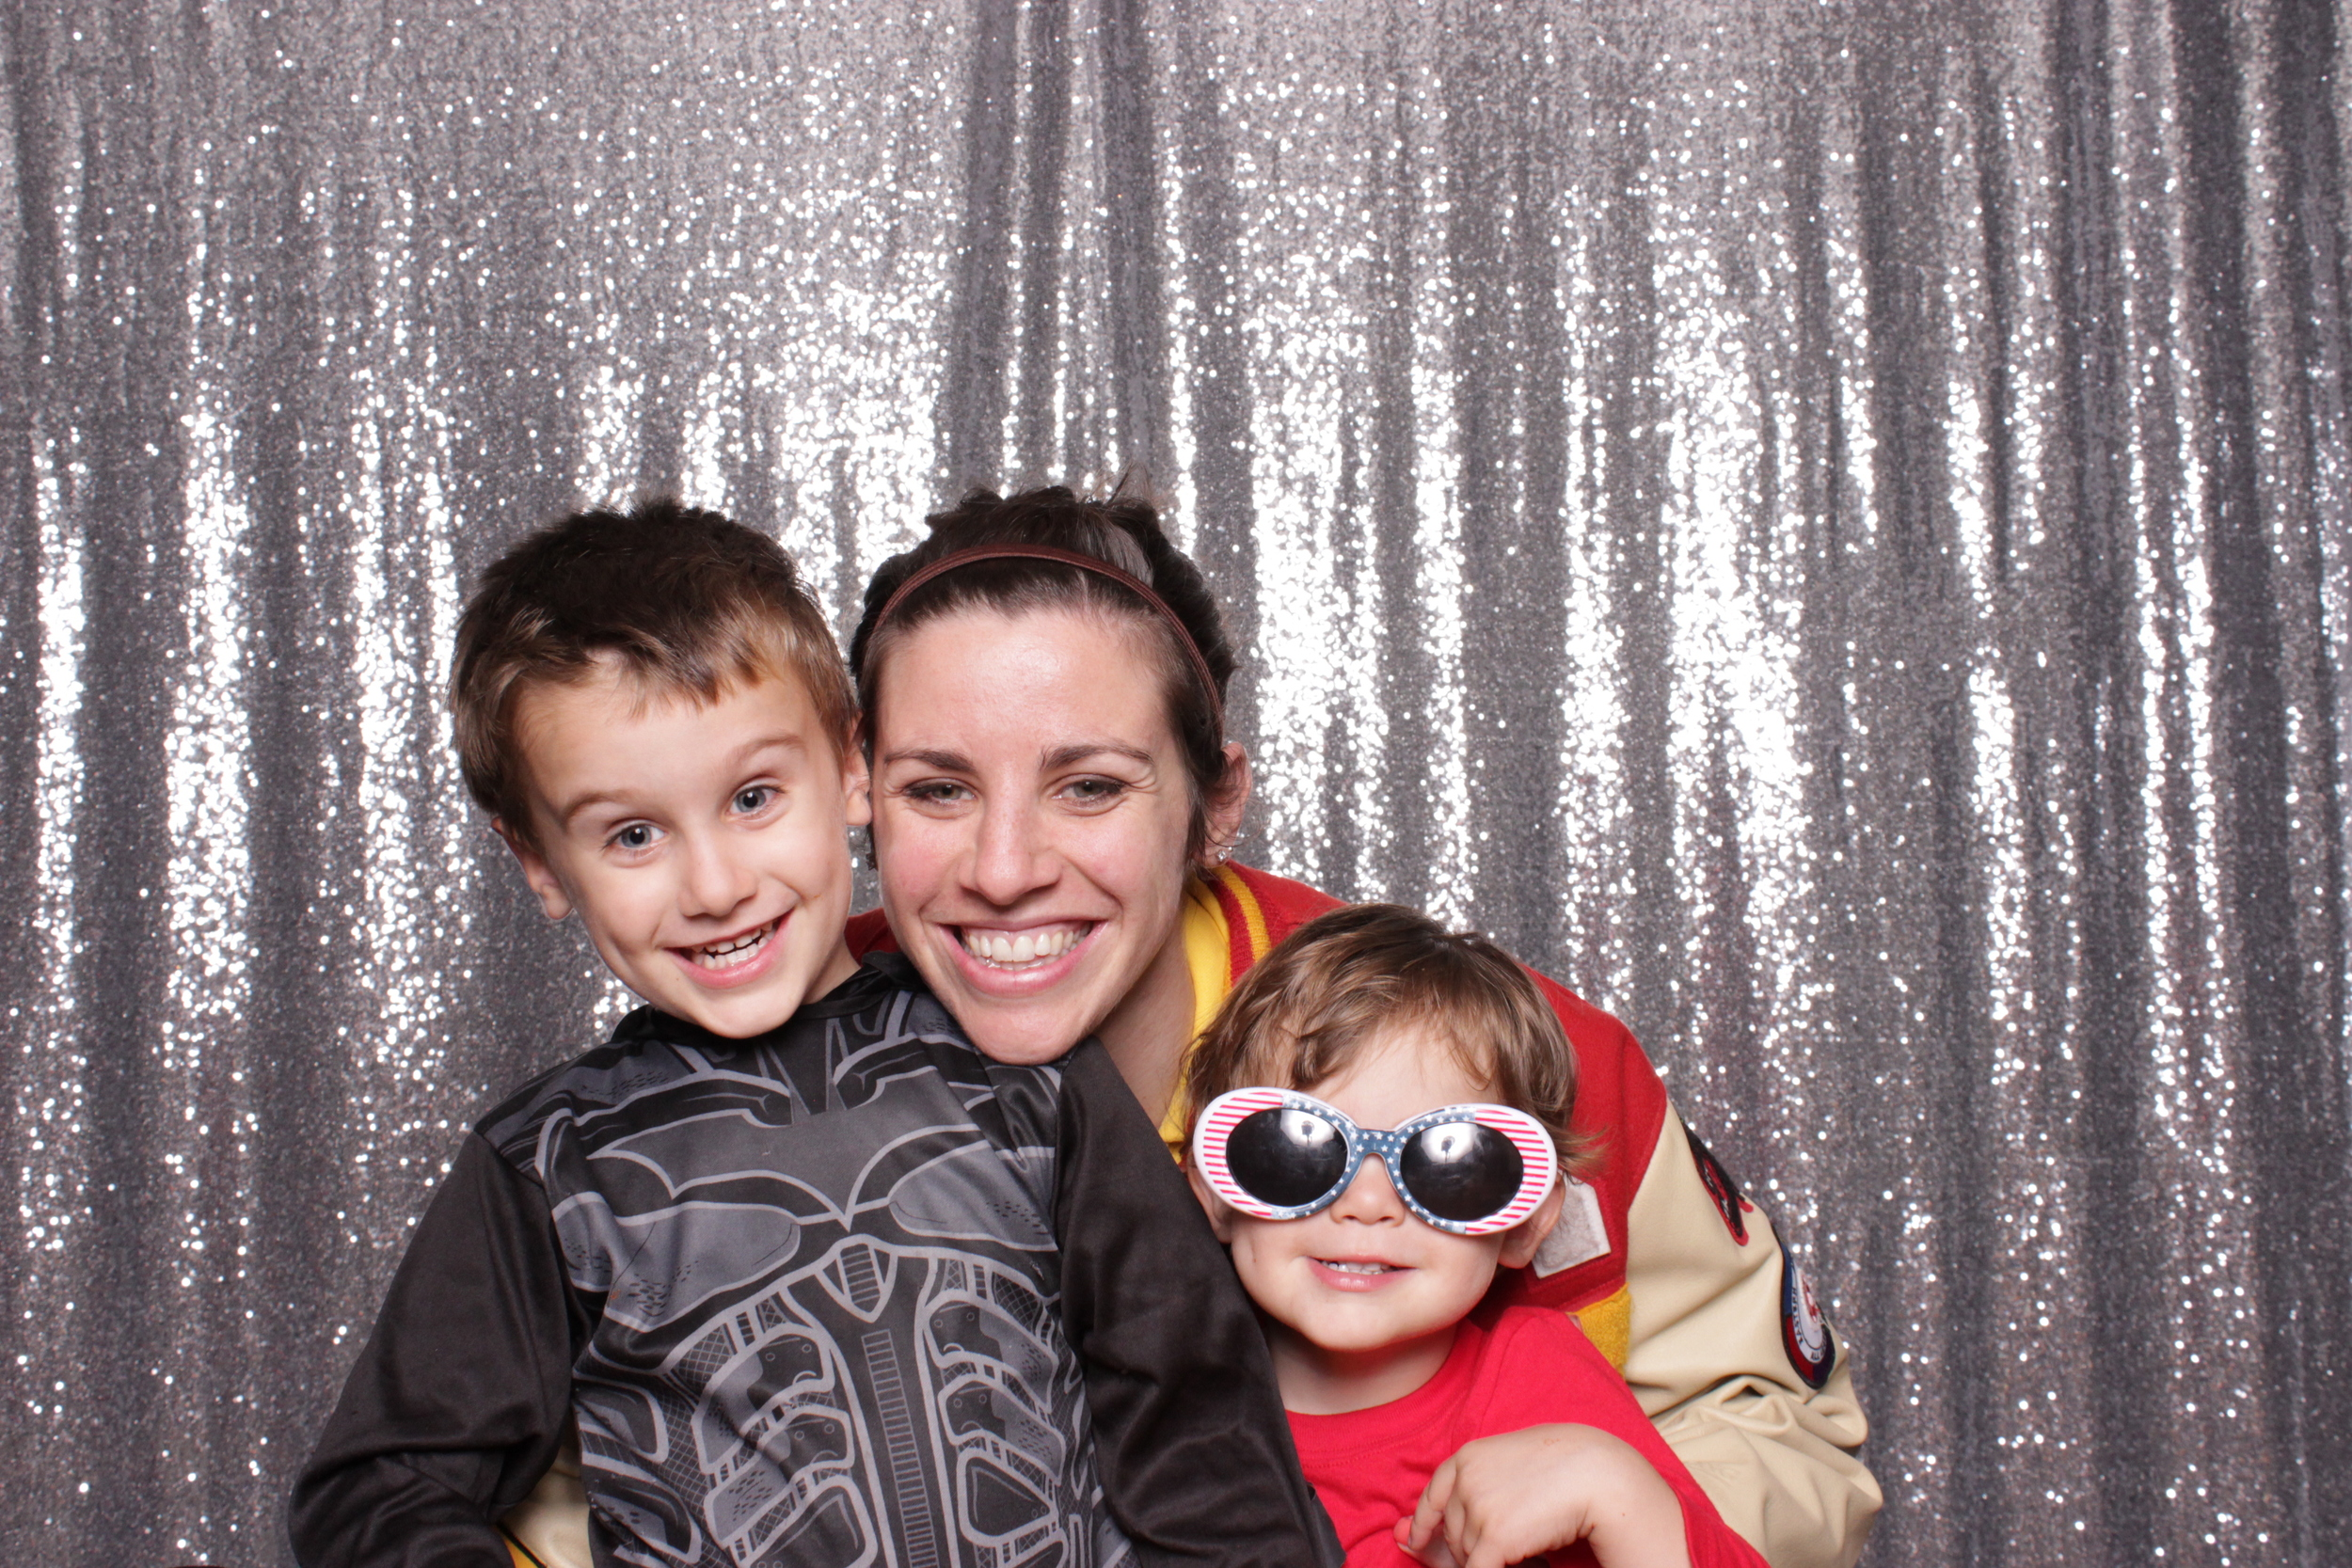 The little one's LOVED the photo booth, with it's easy to use interactive touchscreen :D